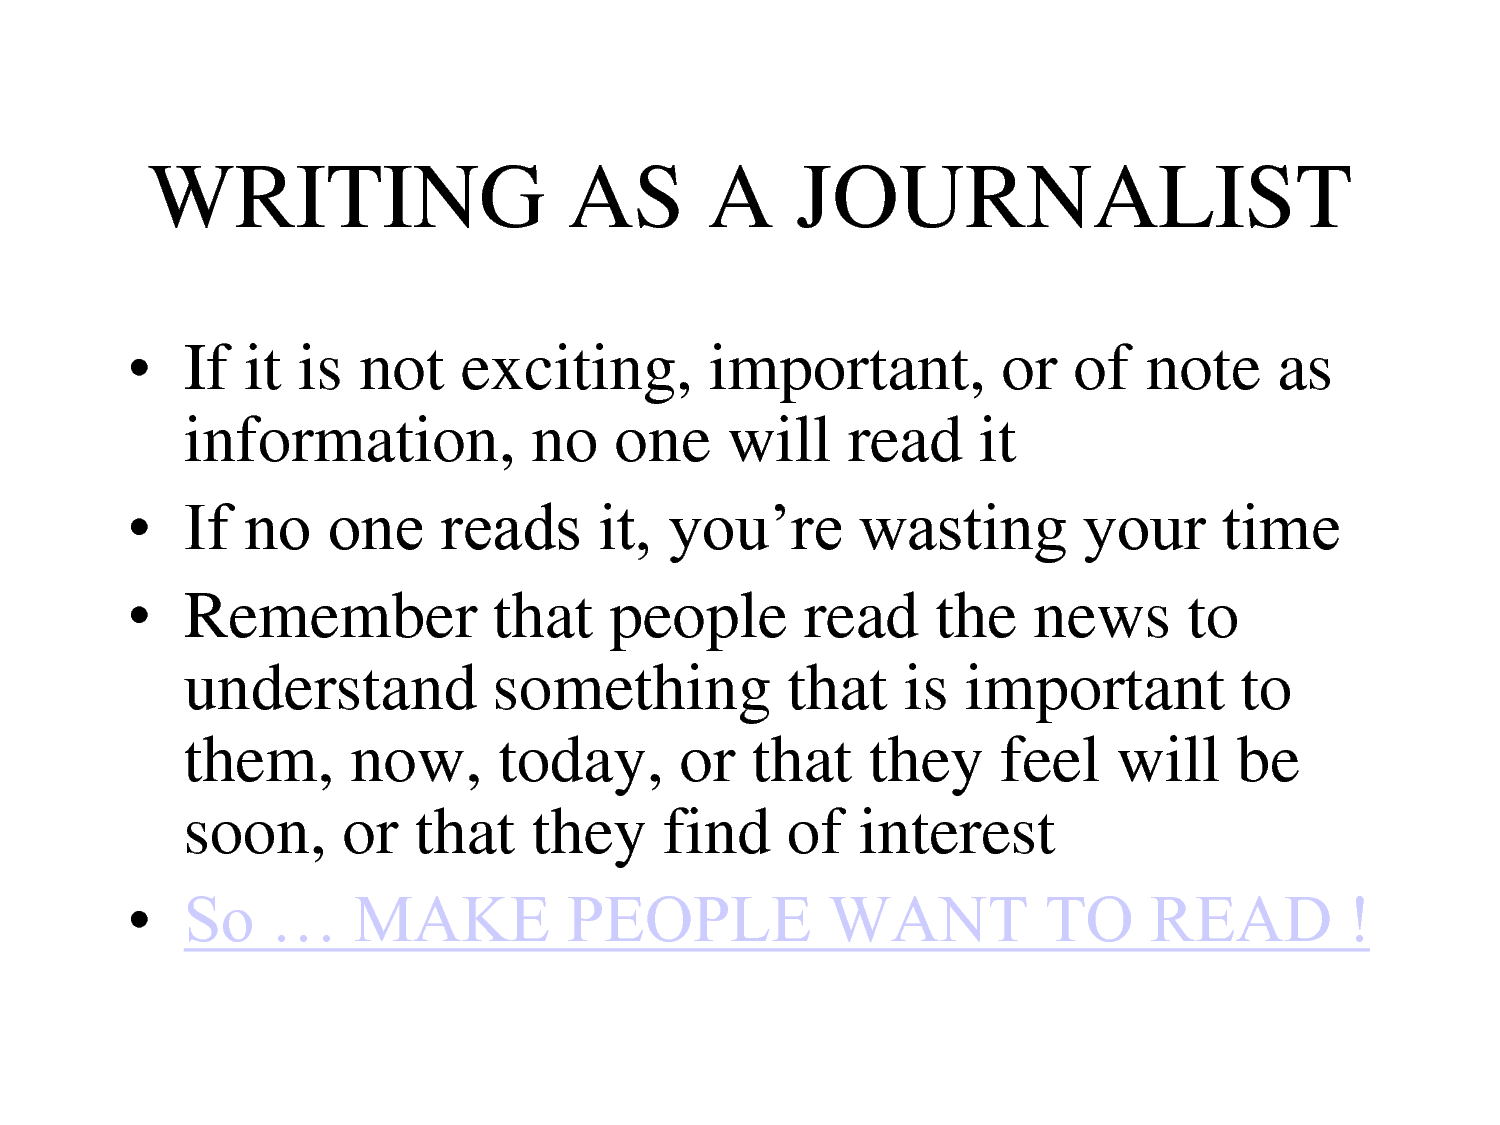 Journalism quote #2